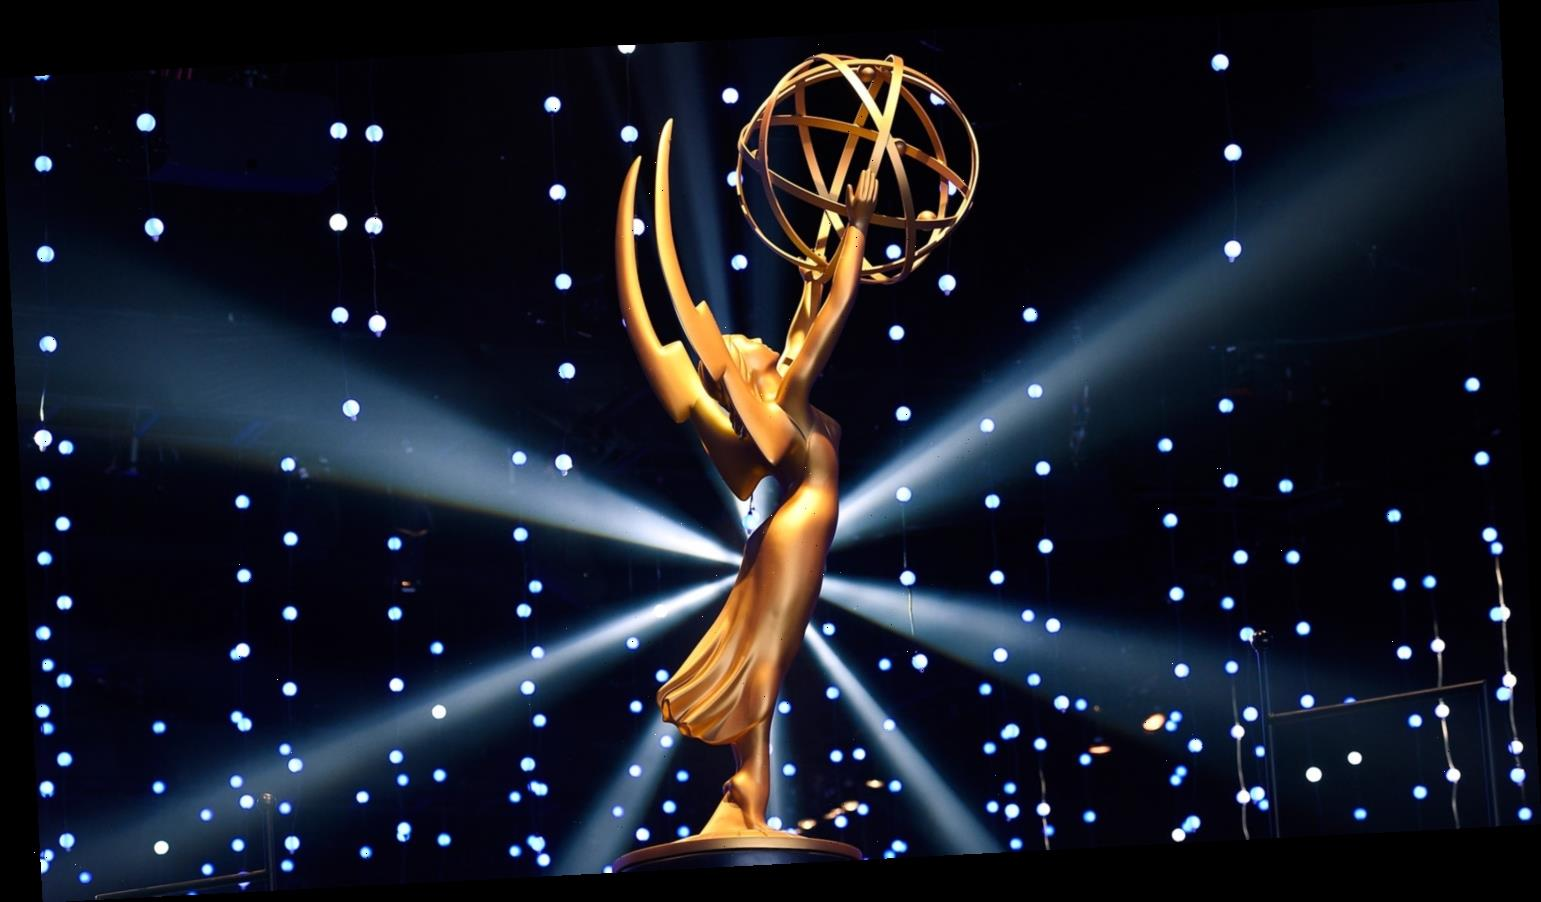 Emmys 2021 Will Have New Rules Changes in Several Categories